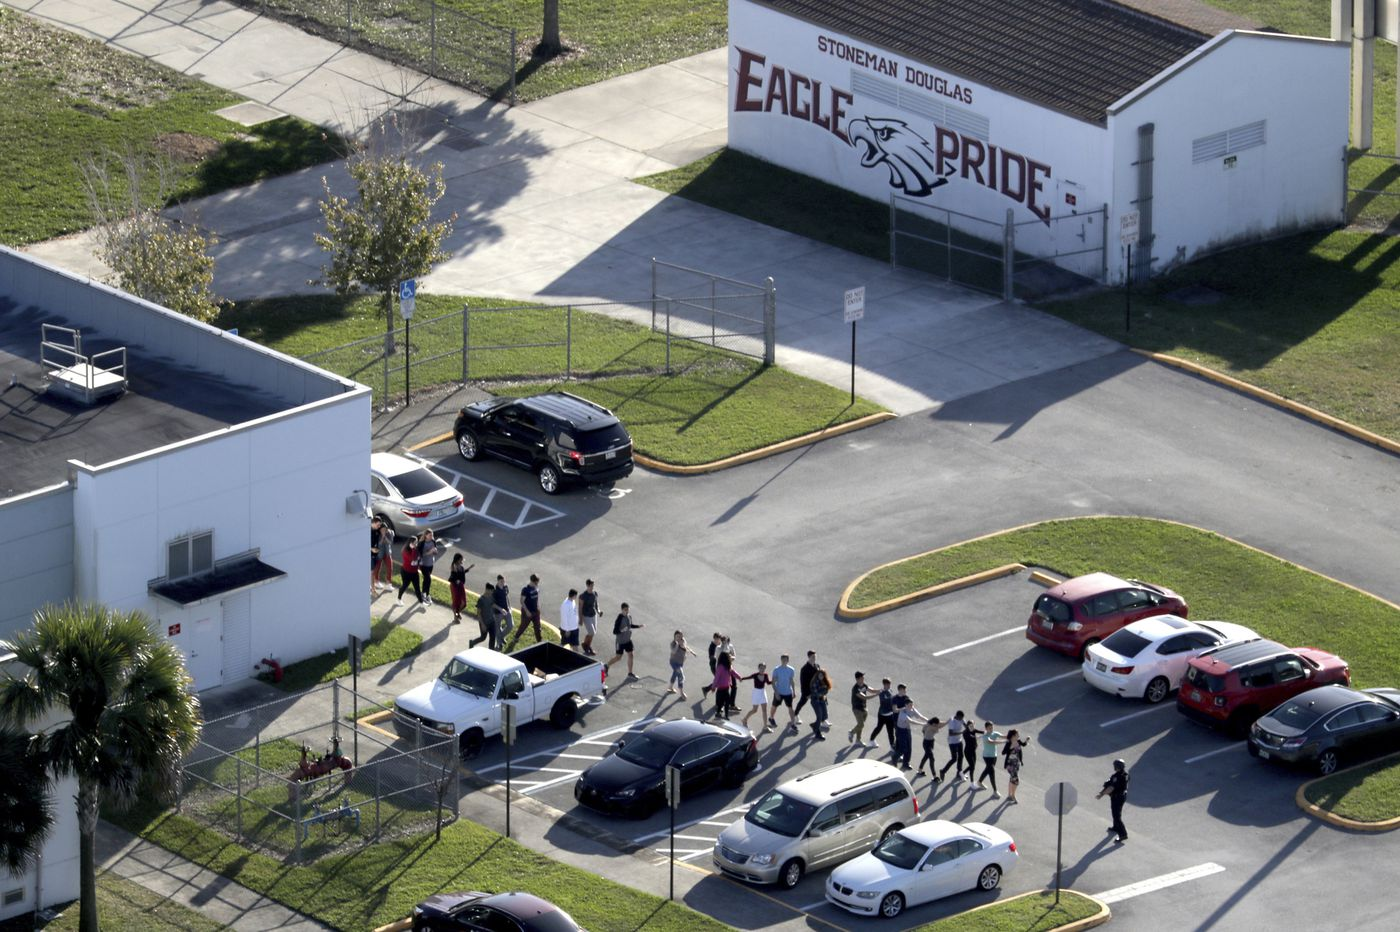 Blood, bodies, chaos: Officers describe Fla. school massacre